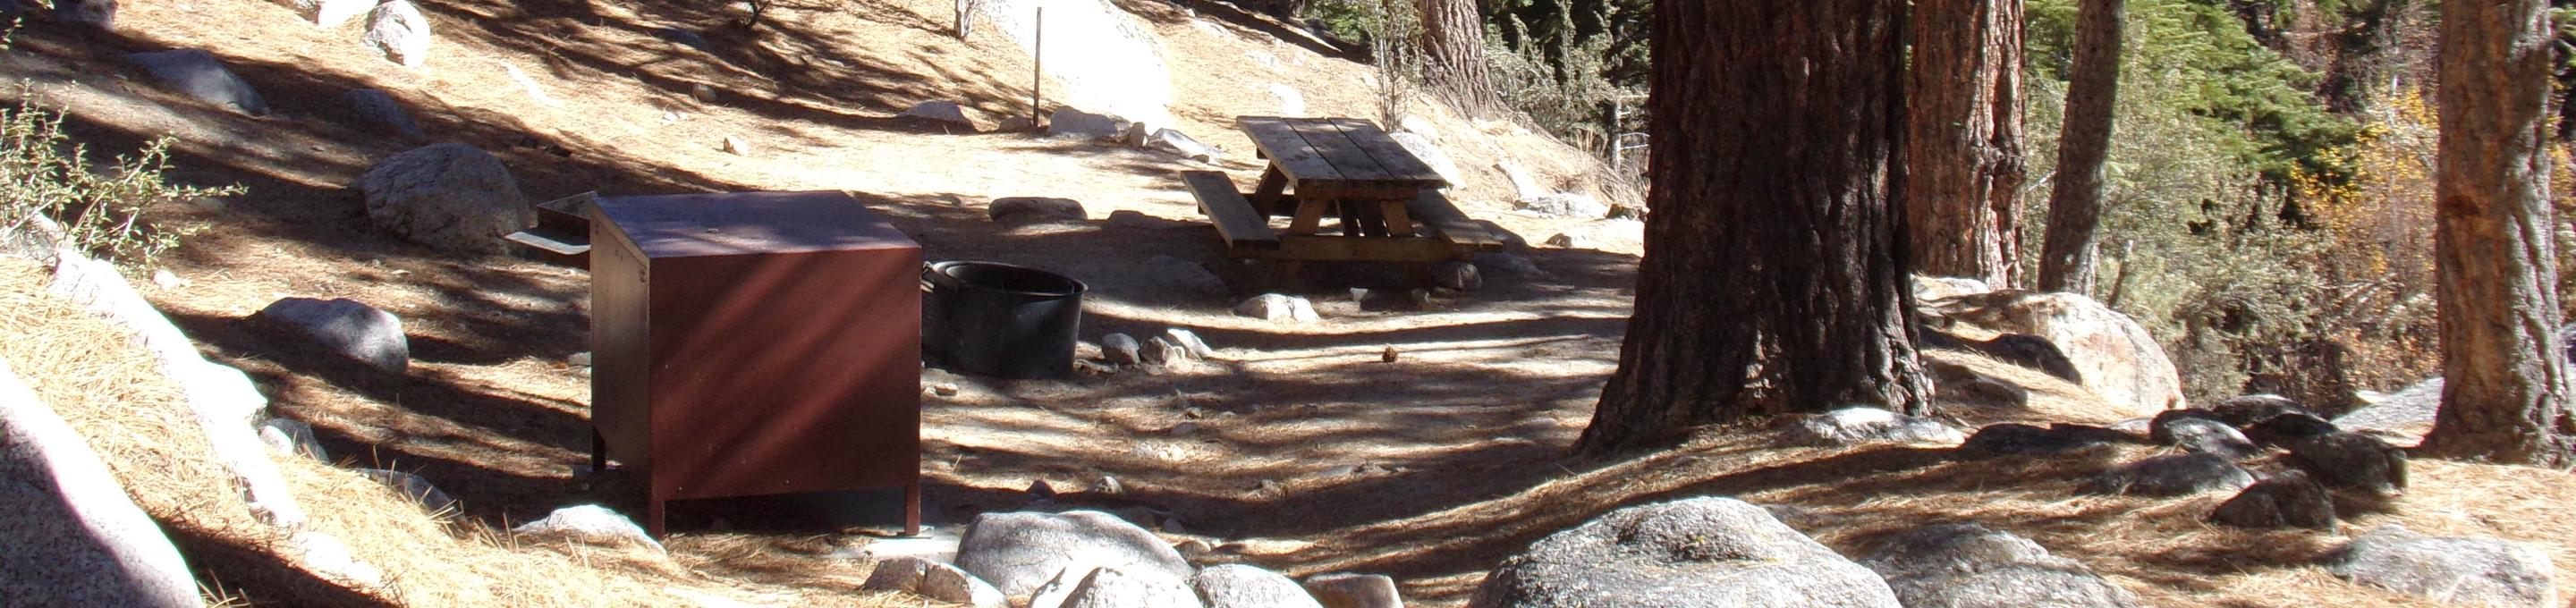 Mt. Whitney Portal Campground site #39 featuring the mountain top setting picnic area and camping space.